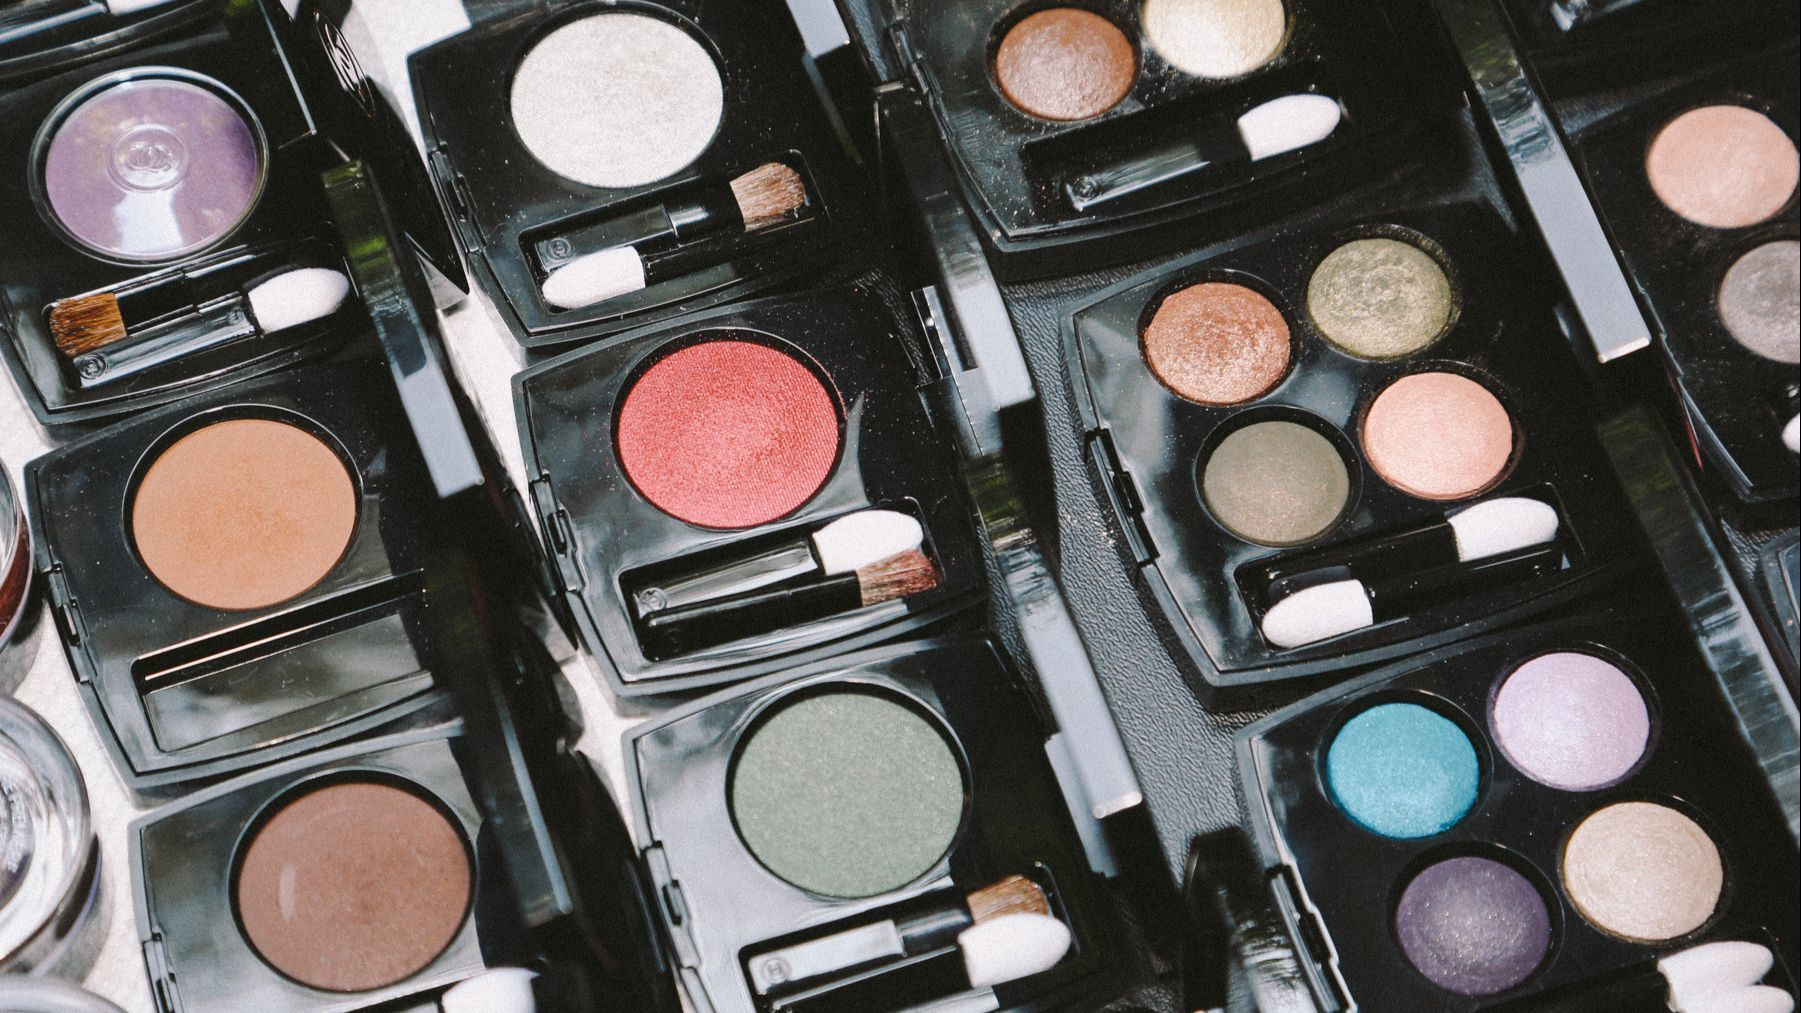 A colorful array of Chanel palettes shot by celebrity makeup artist and Chanel ambassador Kate Lee.